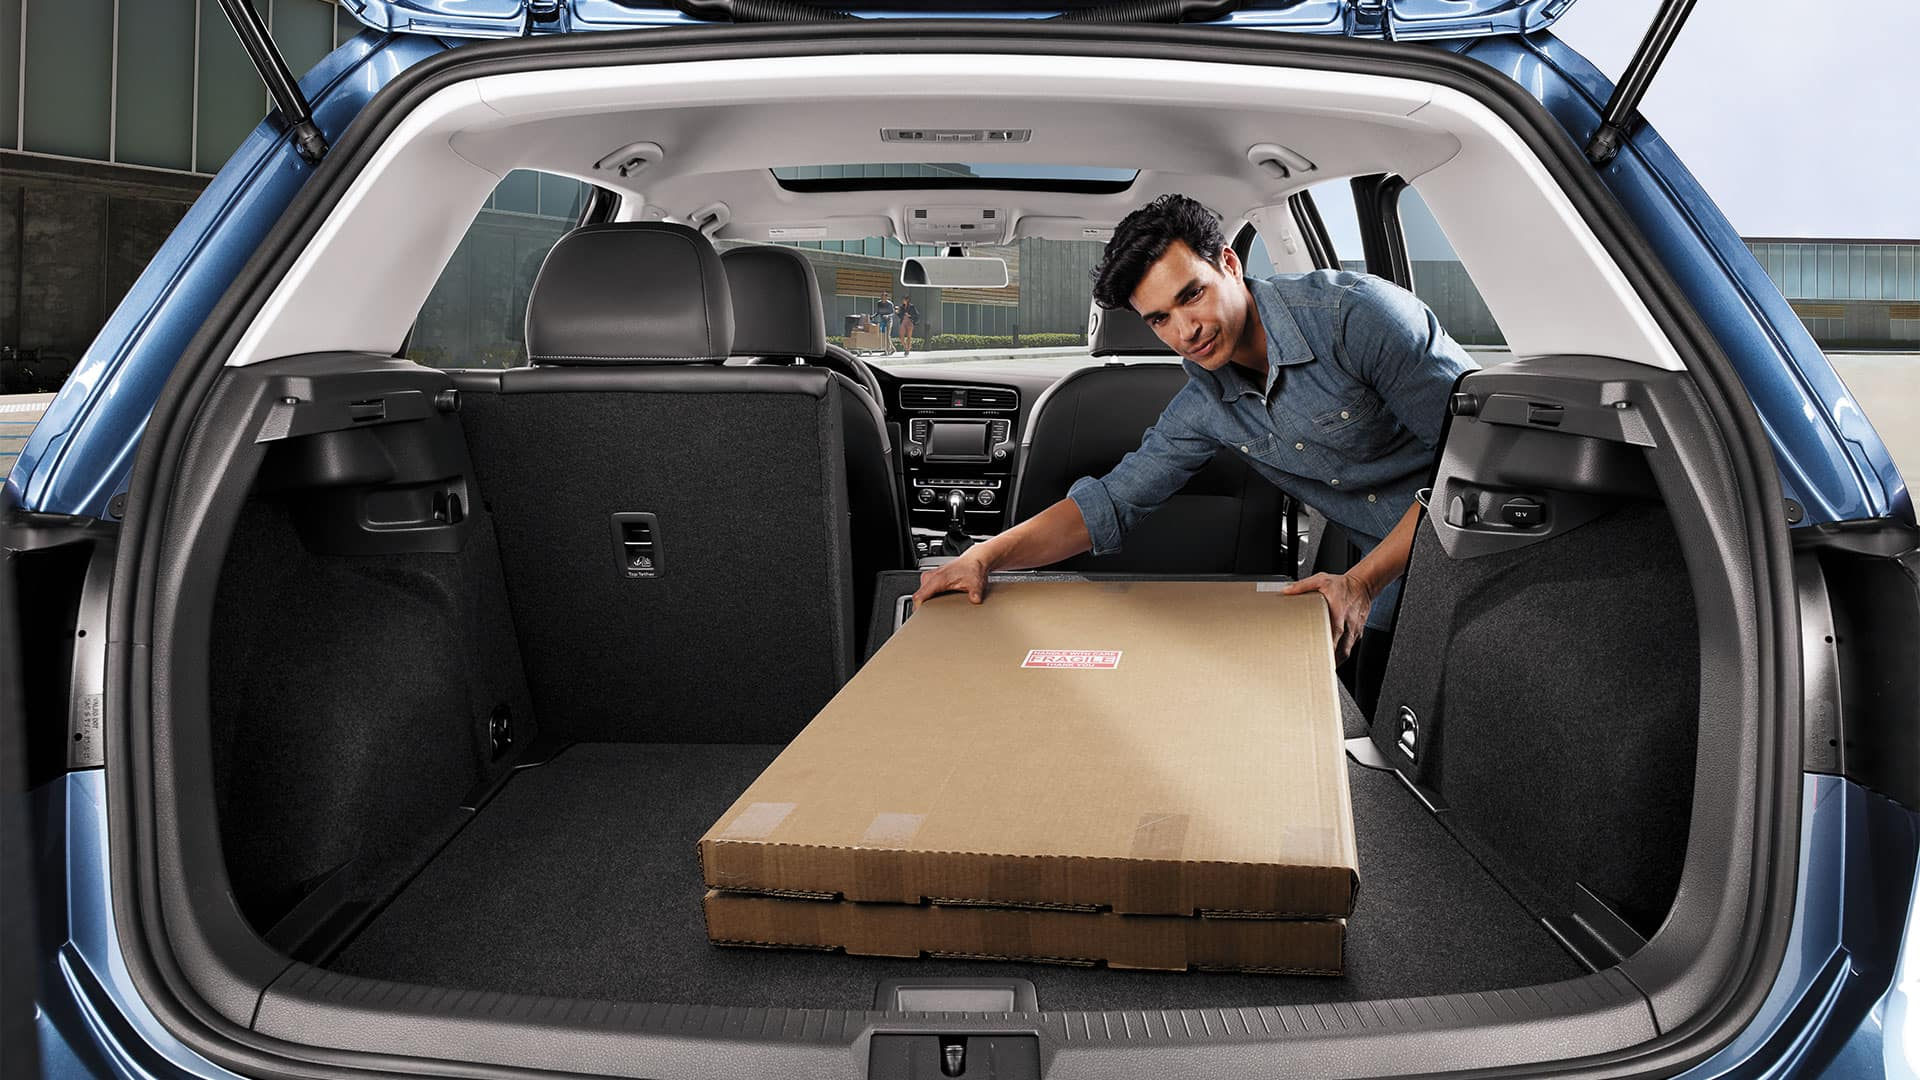 Man using the 2019 VW Golf folding seats feature to transport otherwise unwieldy boxes.